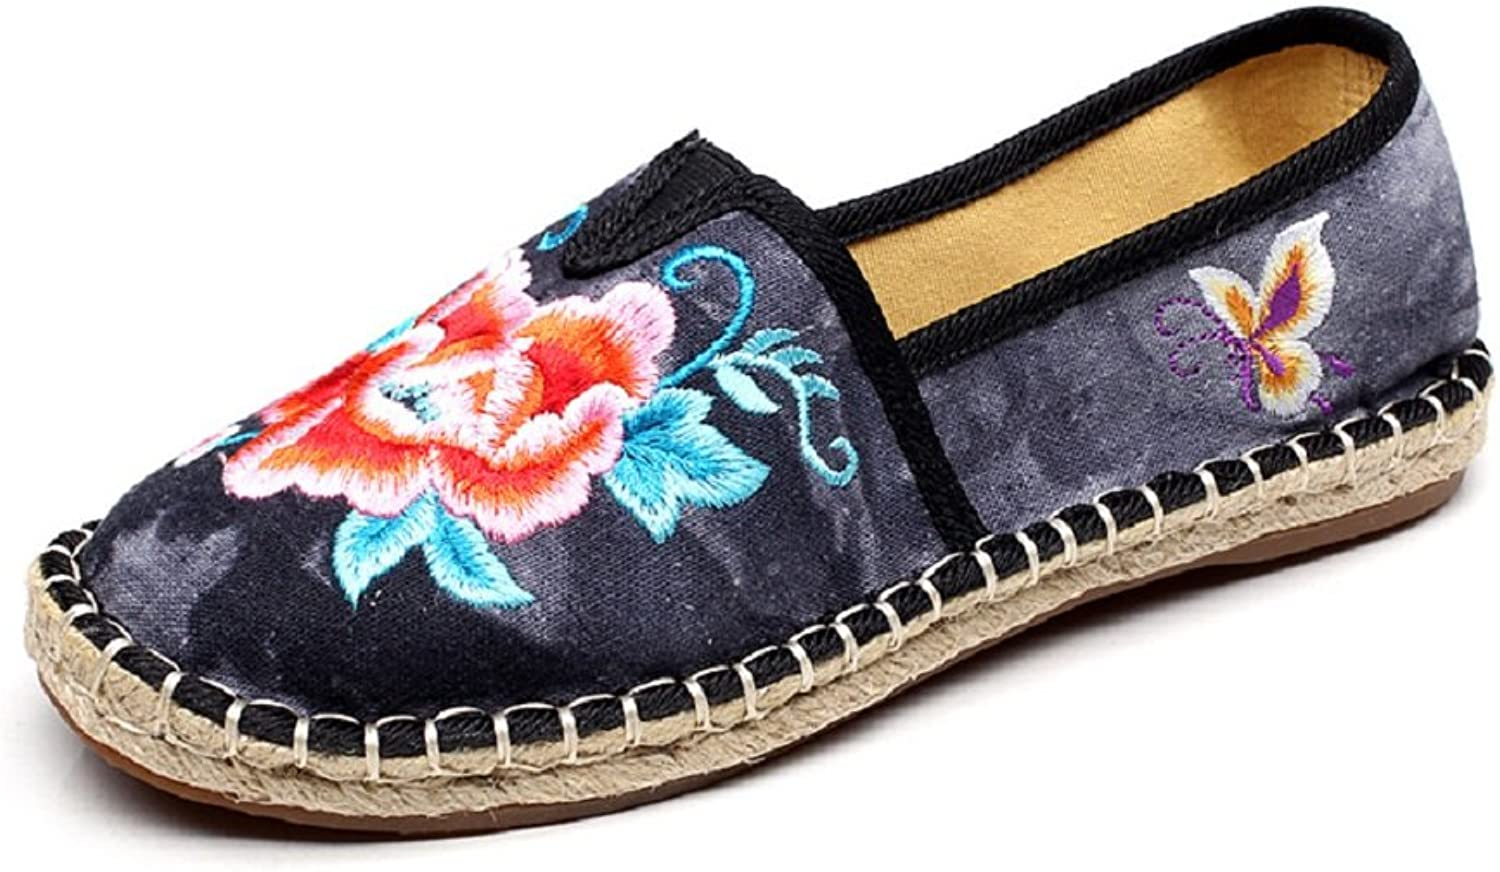 Tianrui Crown Womens Flowers Embroidery Slip-on Loafer Espadrilles shoes